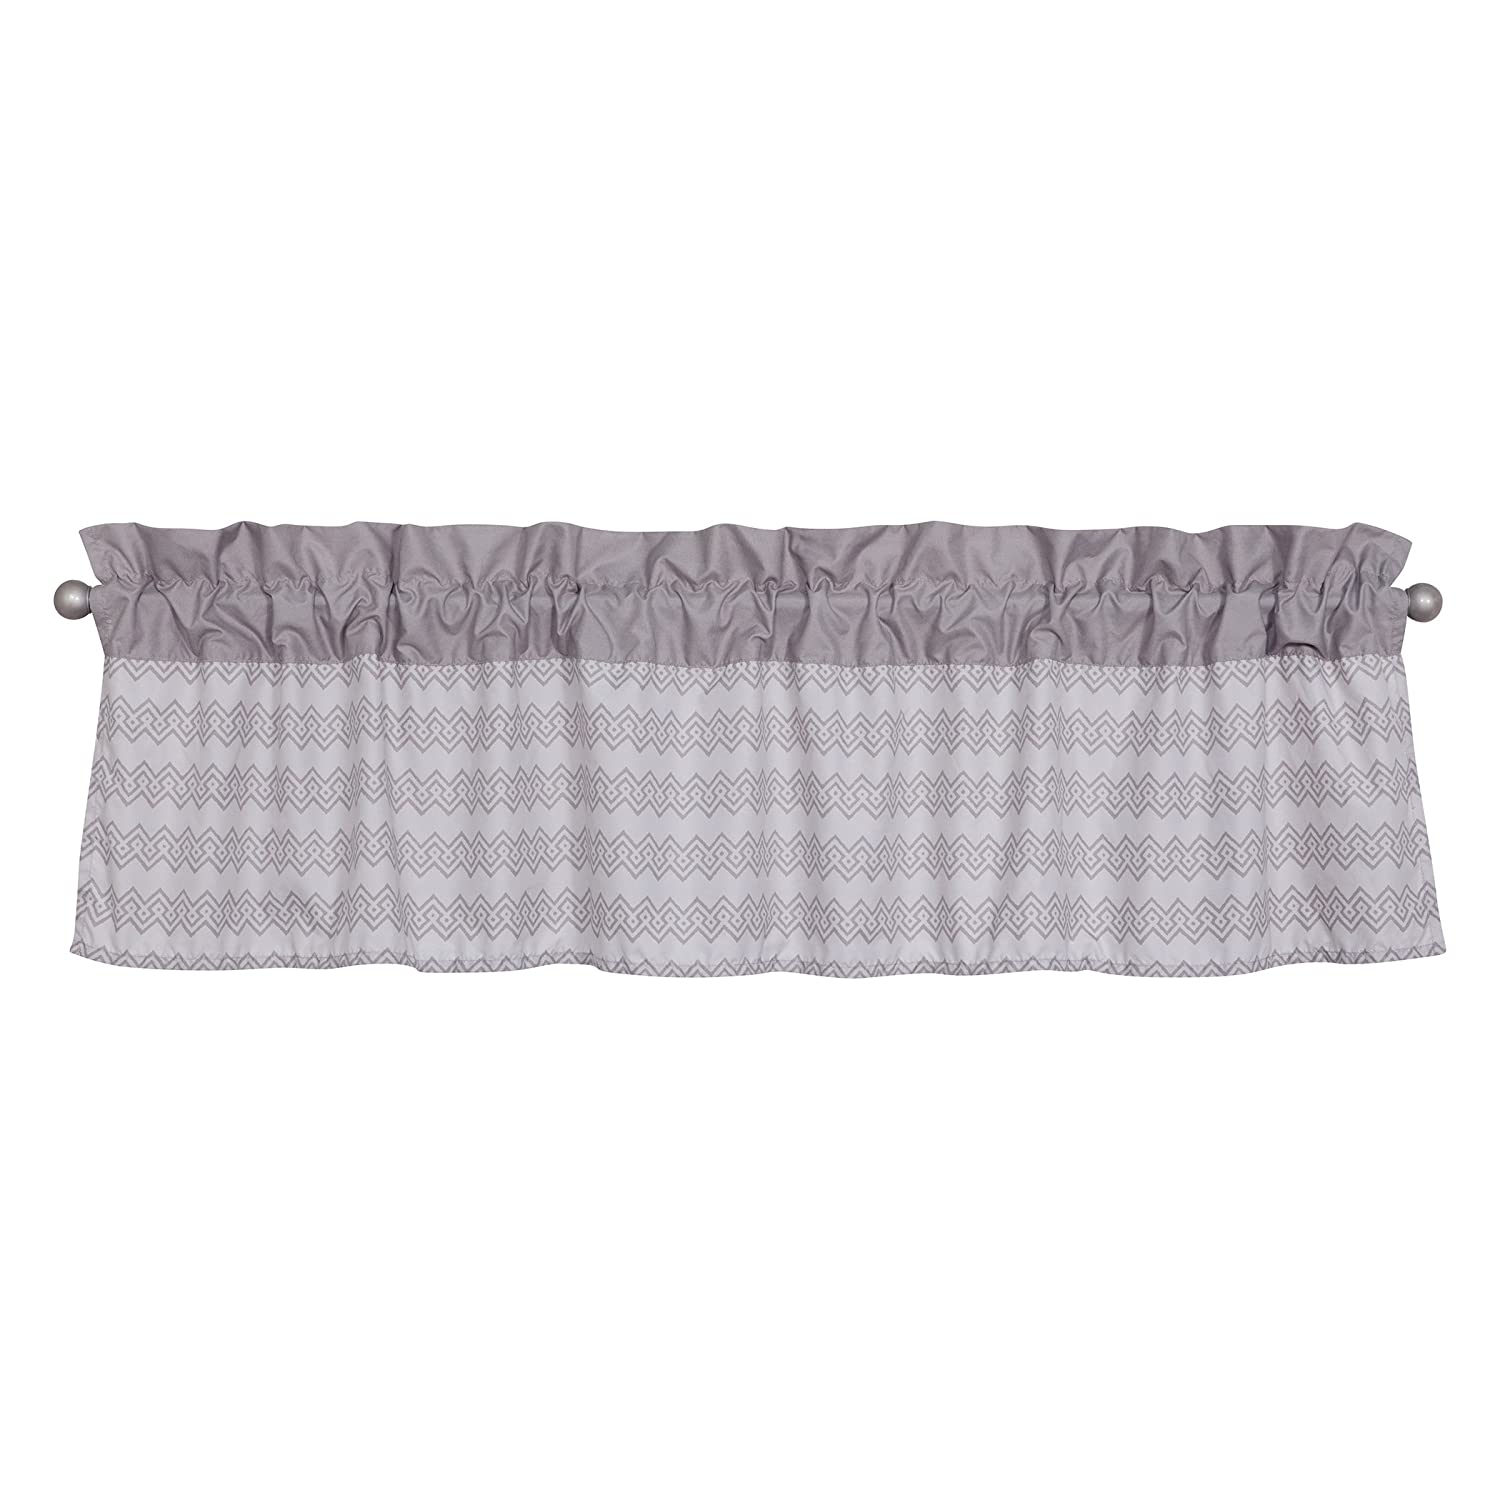 Waverly Congo Line by Trend Lab Window Valance, Covering, Gray